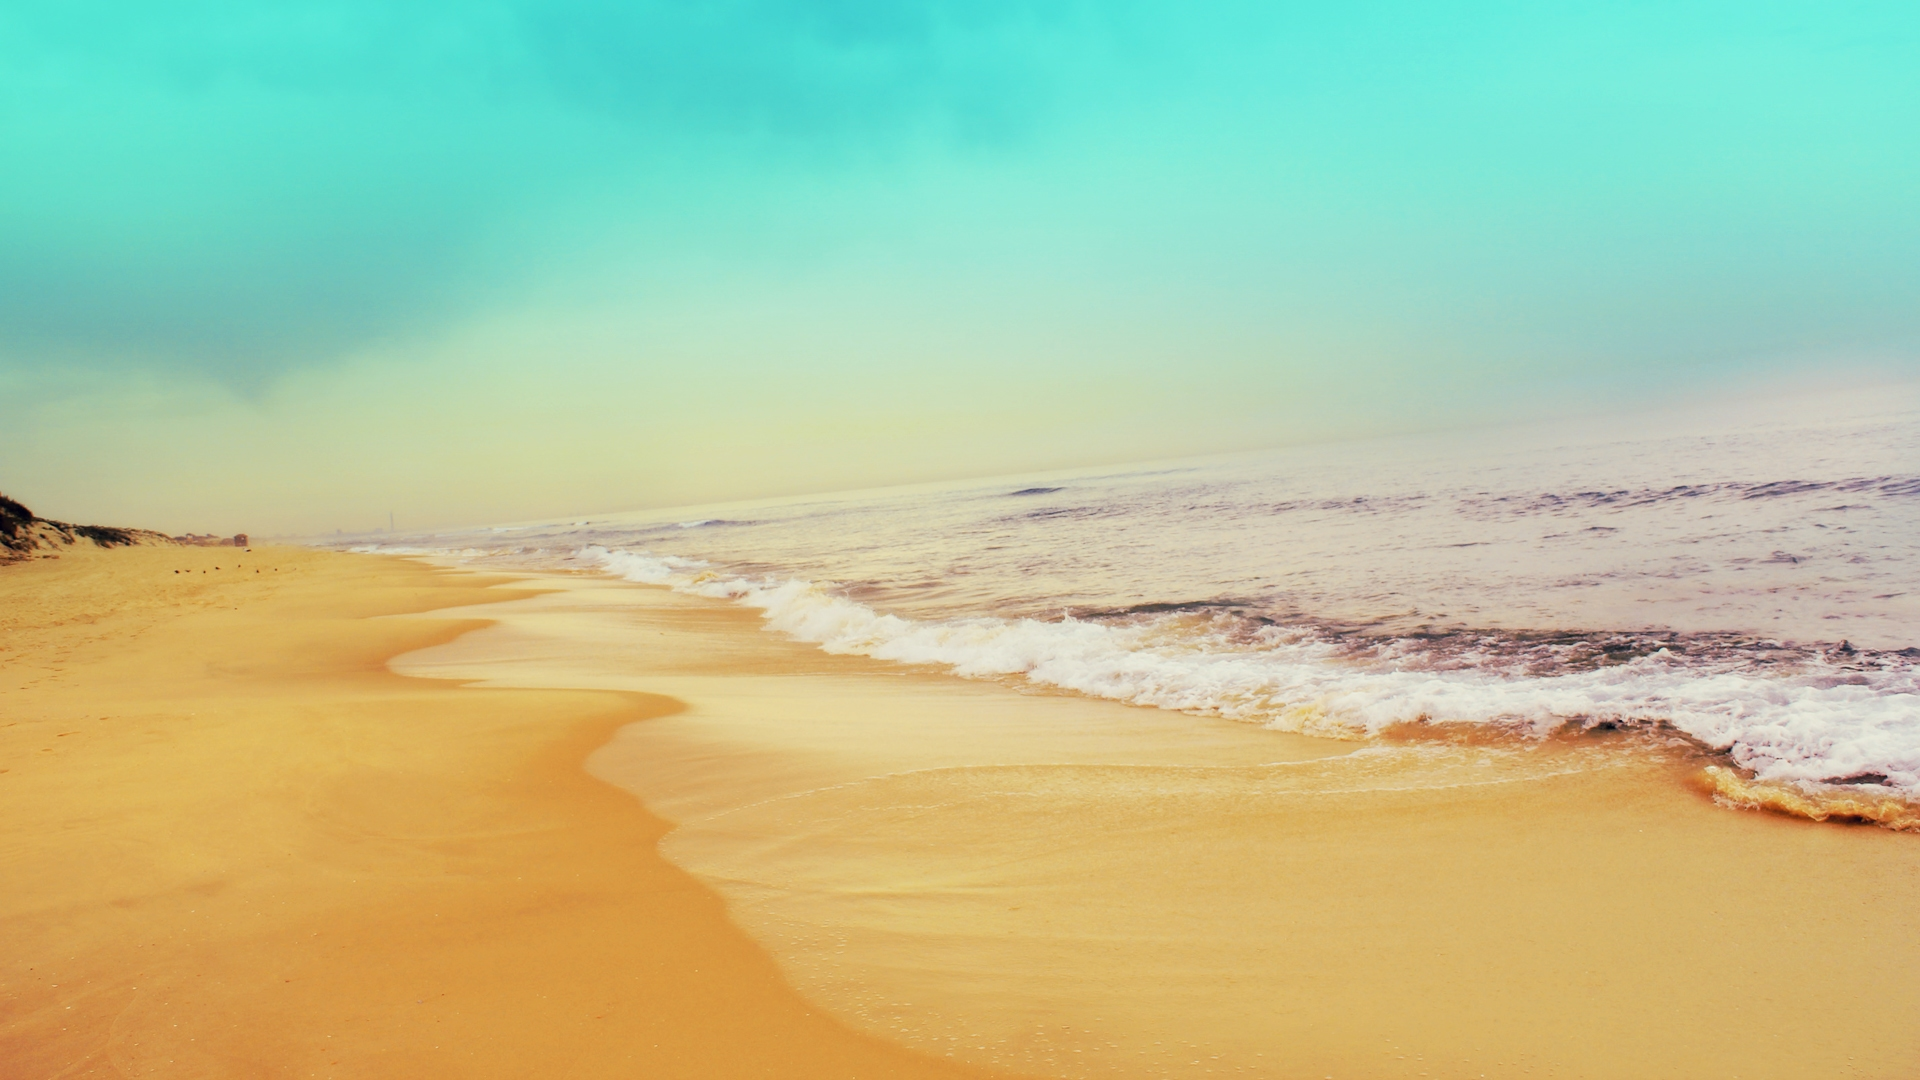 1920x1080 hd wallpaper beach wallpapersafari for Beach wallpaper 1920x1080